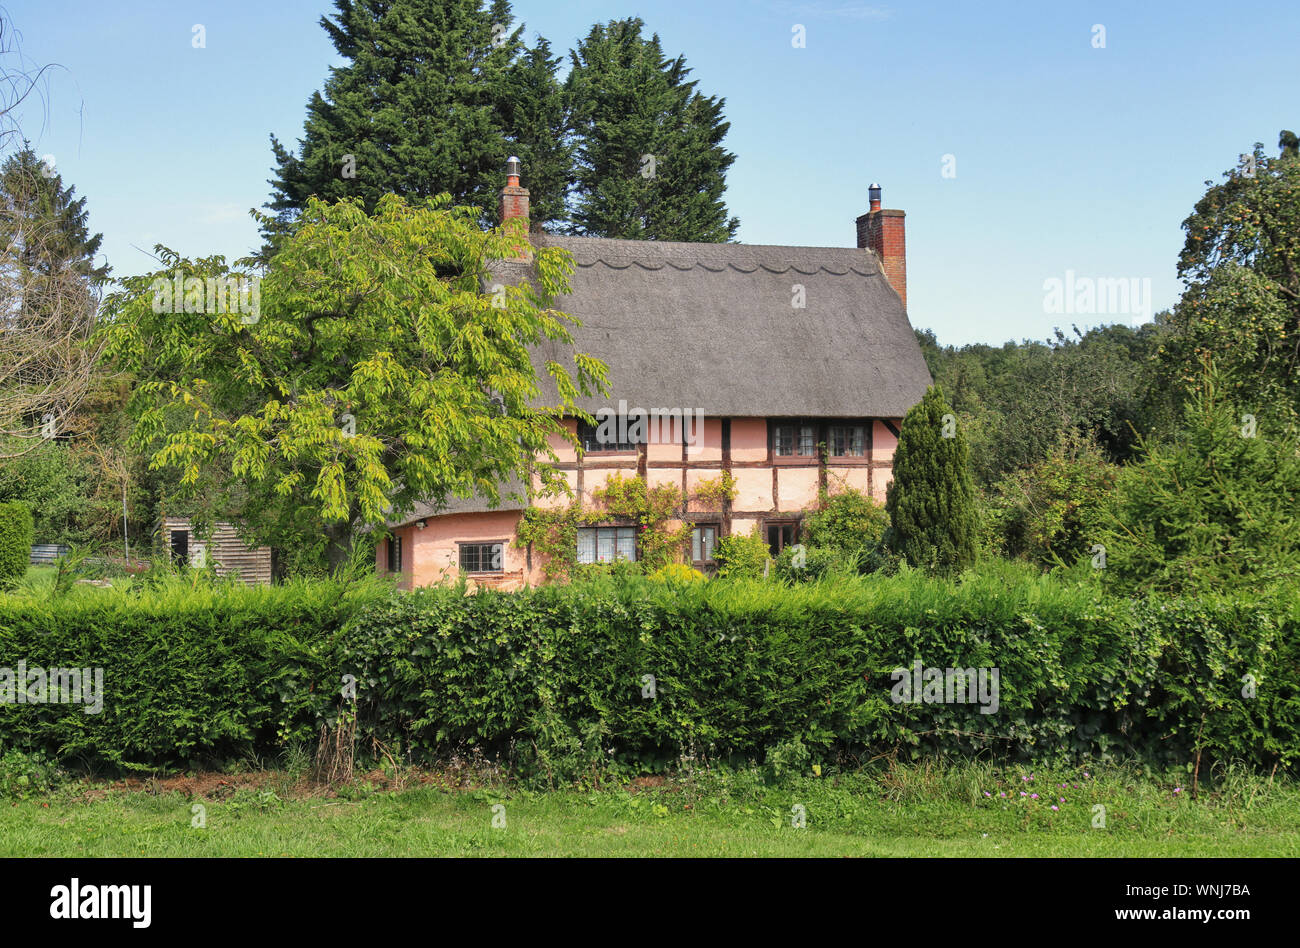 Traditional Thatched English timber framed Village Cottage and garden Stock Photo